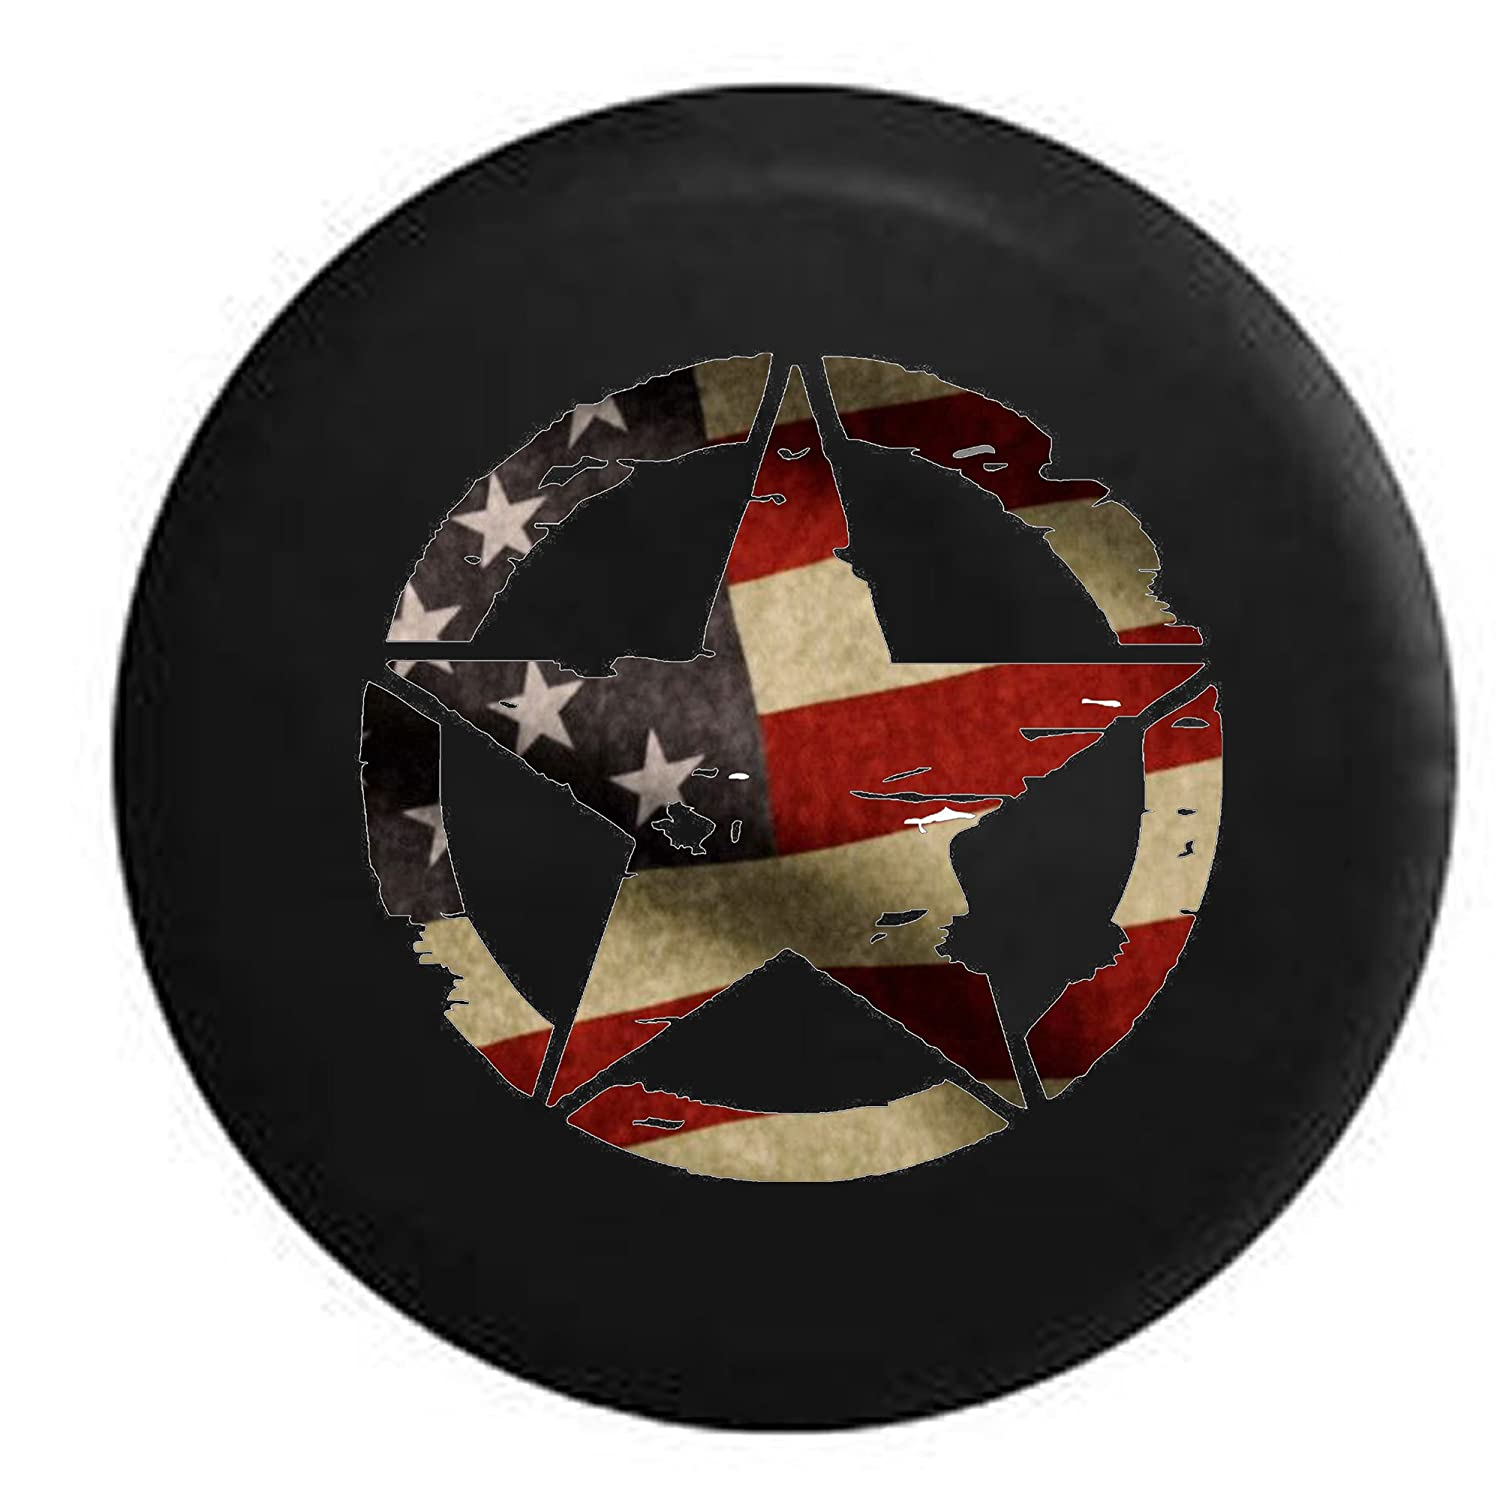 Oscar Mike Military Jeep Star Vintage American Flag Jeep RV Spare Tire Cover Black 33 in American Unlimited .